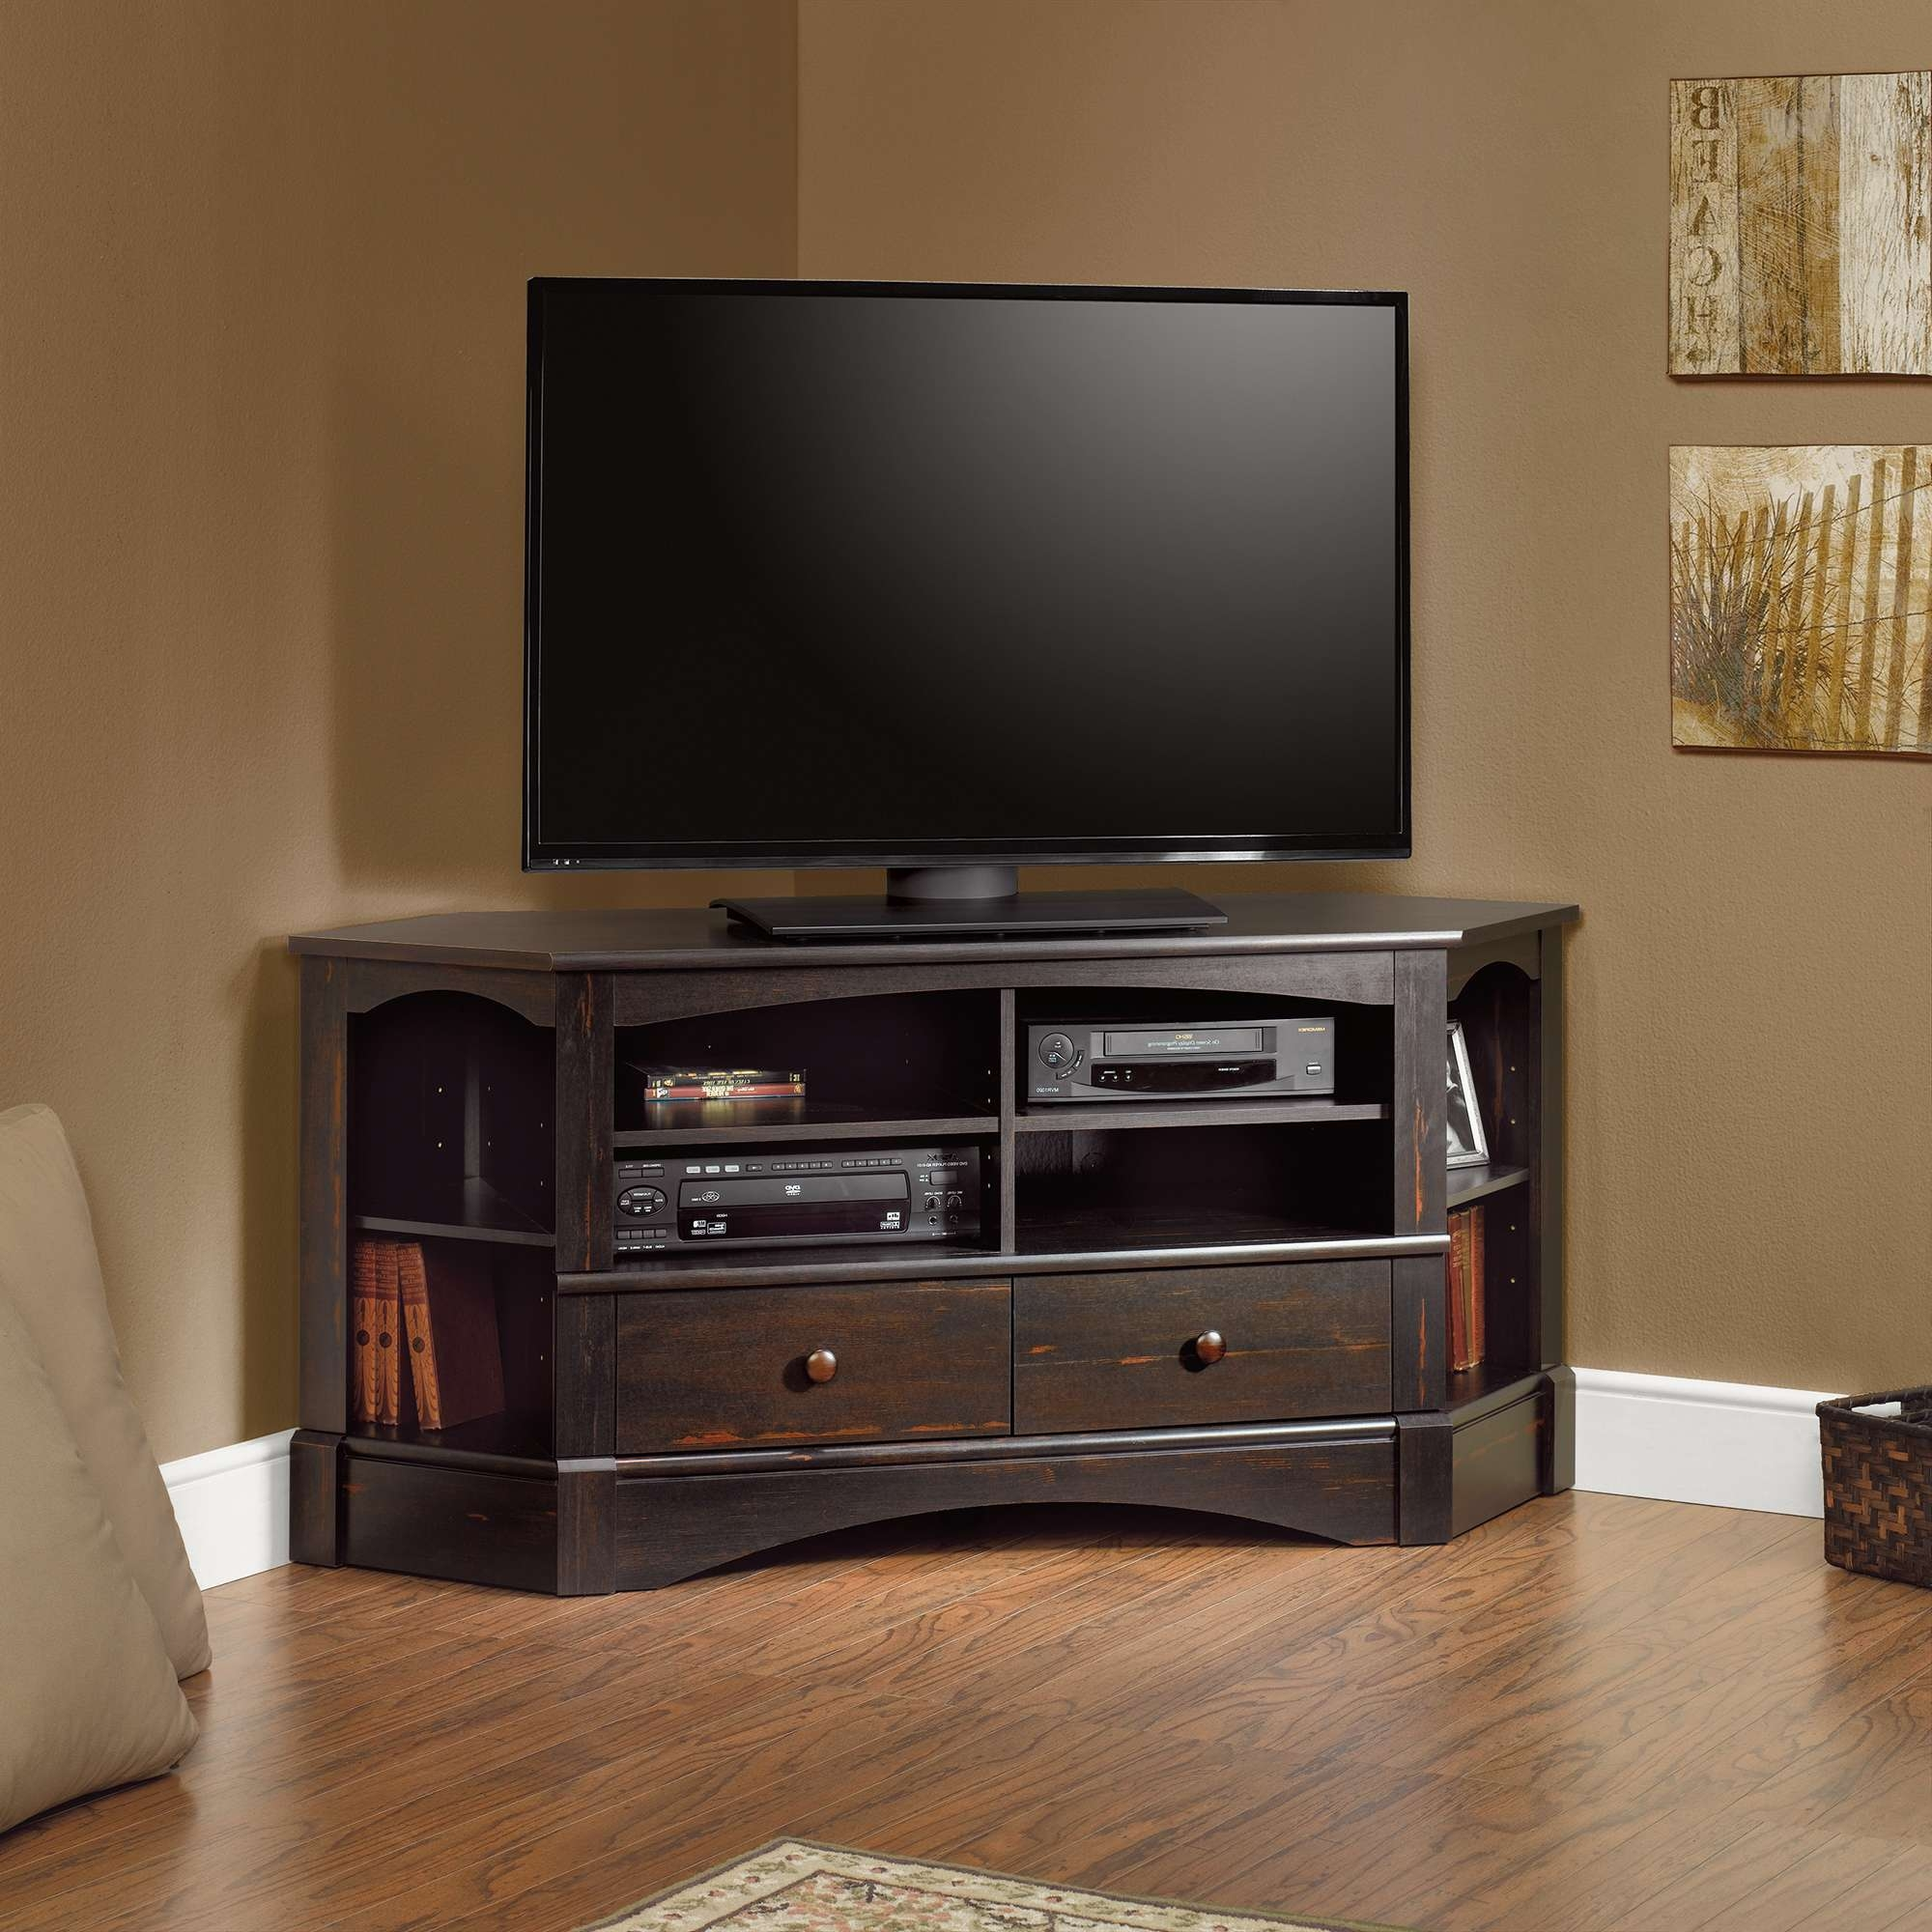 Harbor View | Corner Entertainment Credenza | 402902 | Sauder With Solid Wood Corner Tv Cabinets (View 5 of 20)